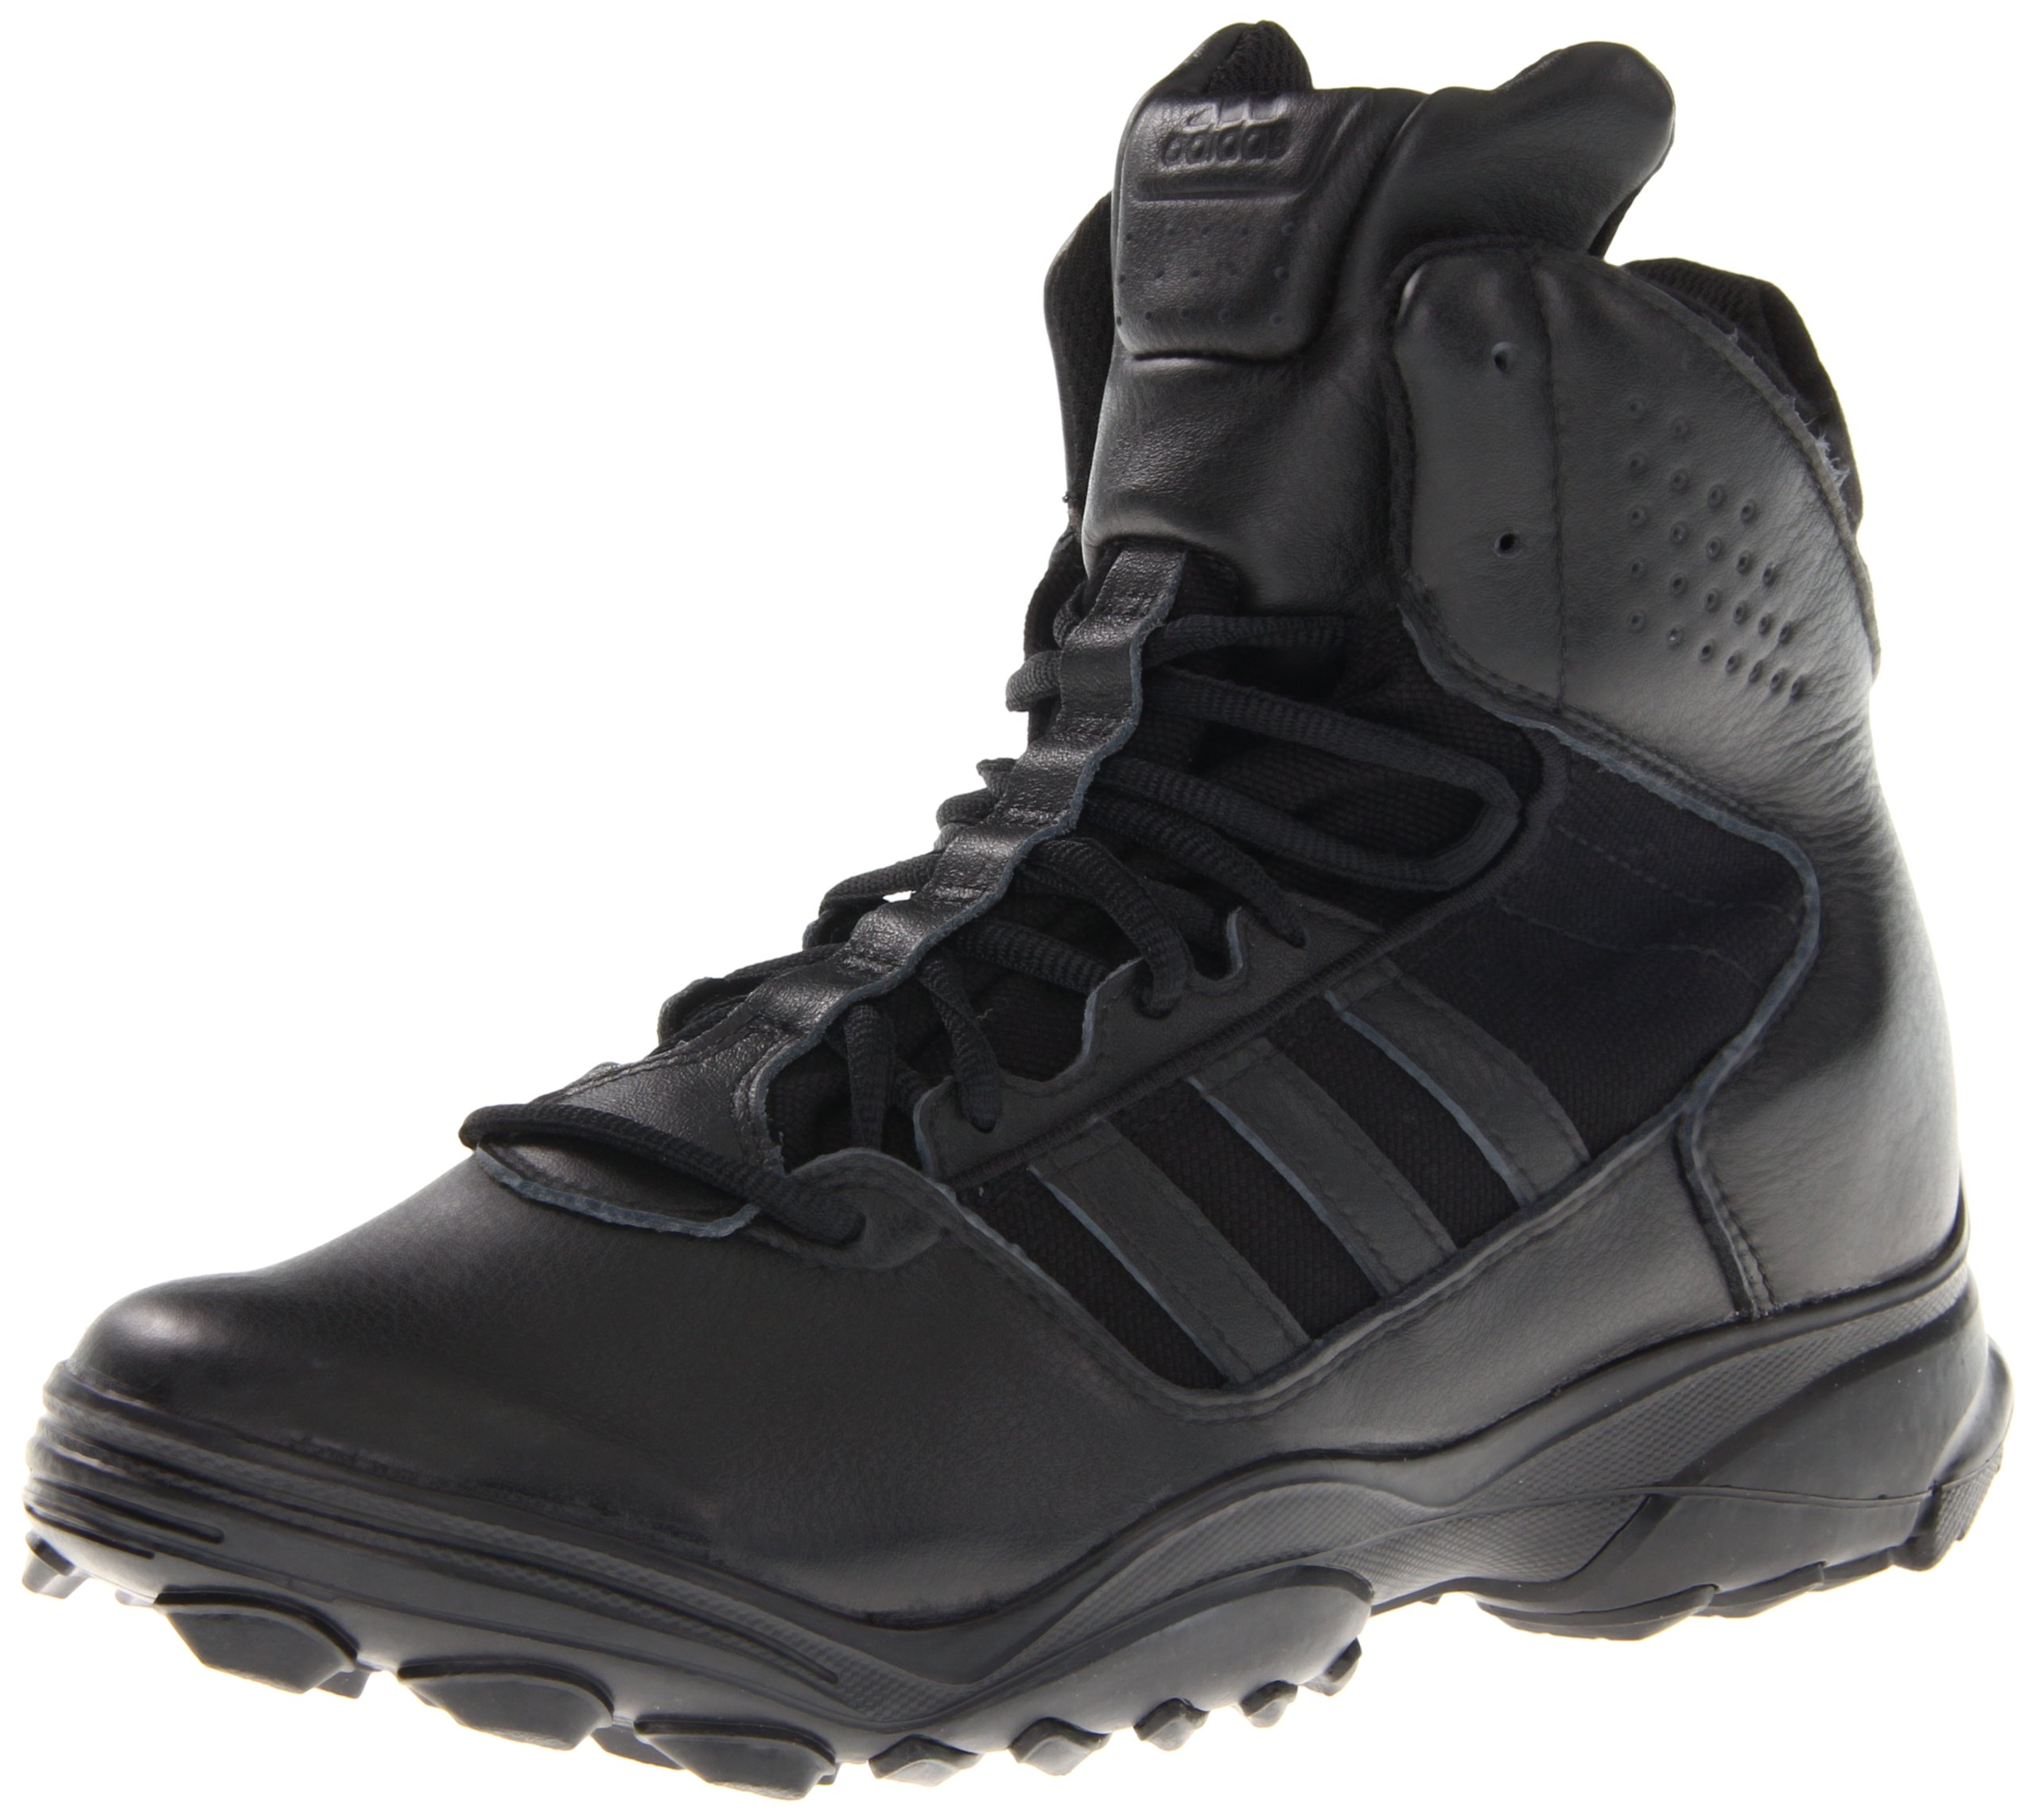 adidas Performance Men's GSG-9.7 Tactical Boot,Black/Black/Black,12.5 M US by adidas